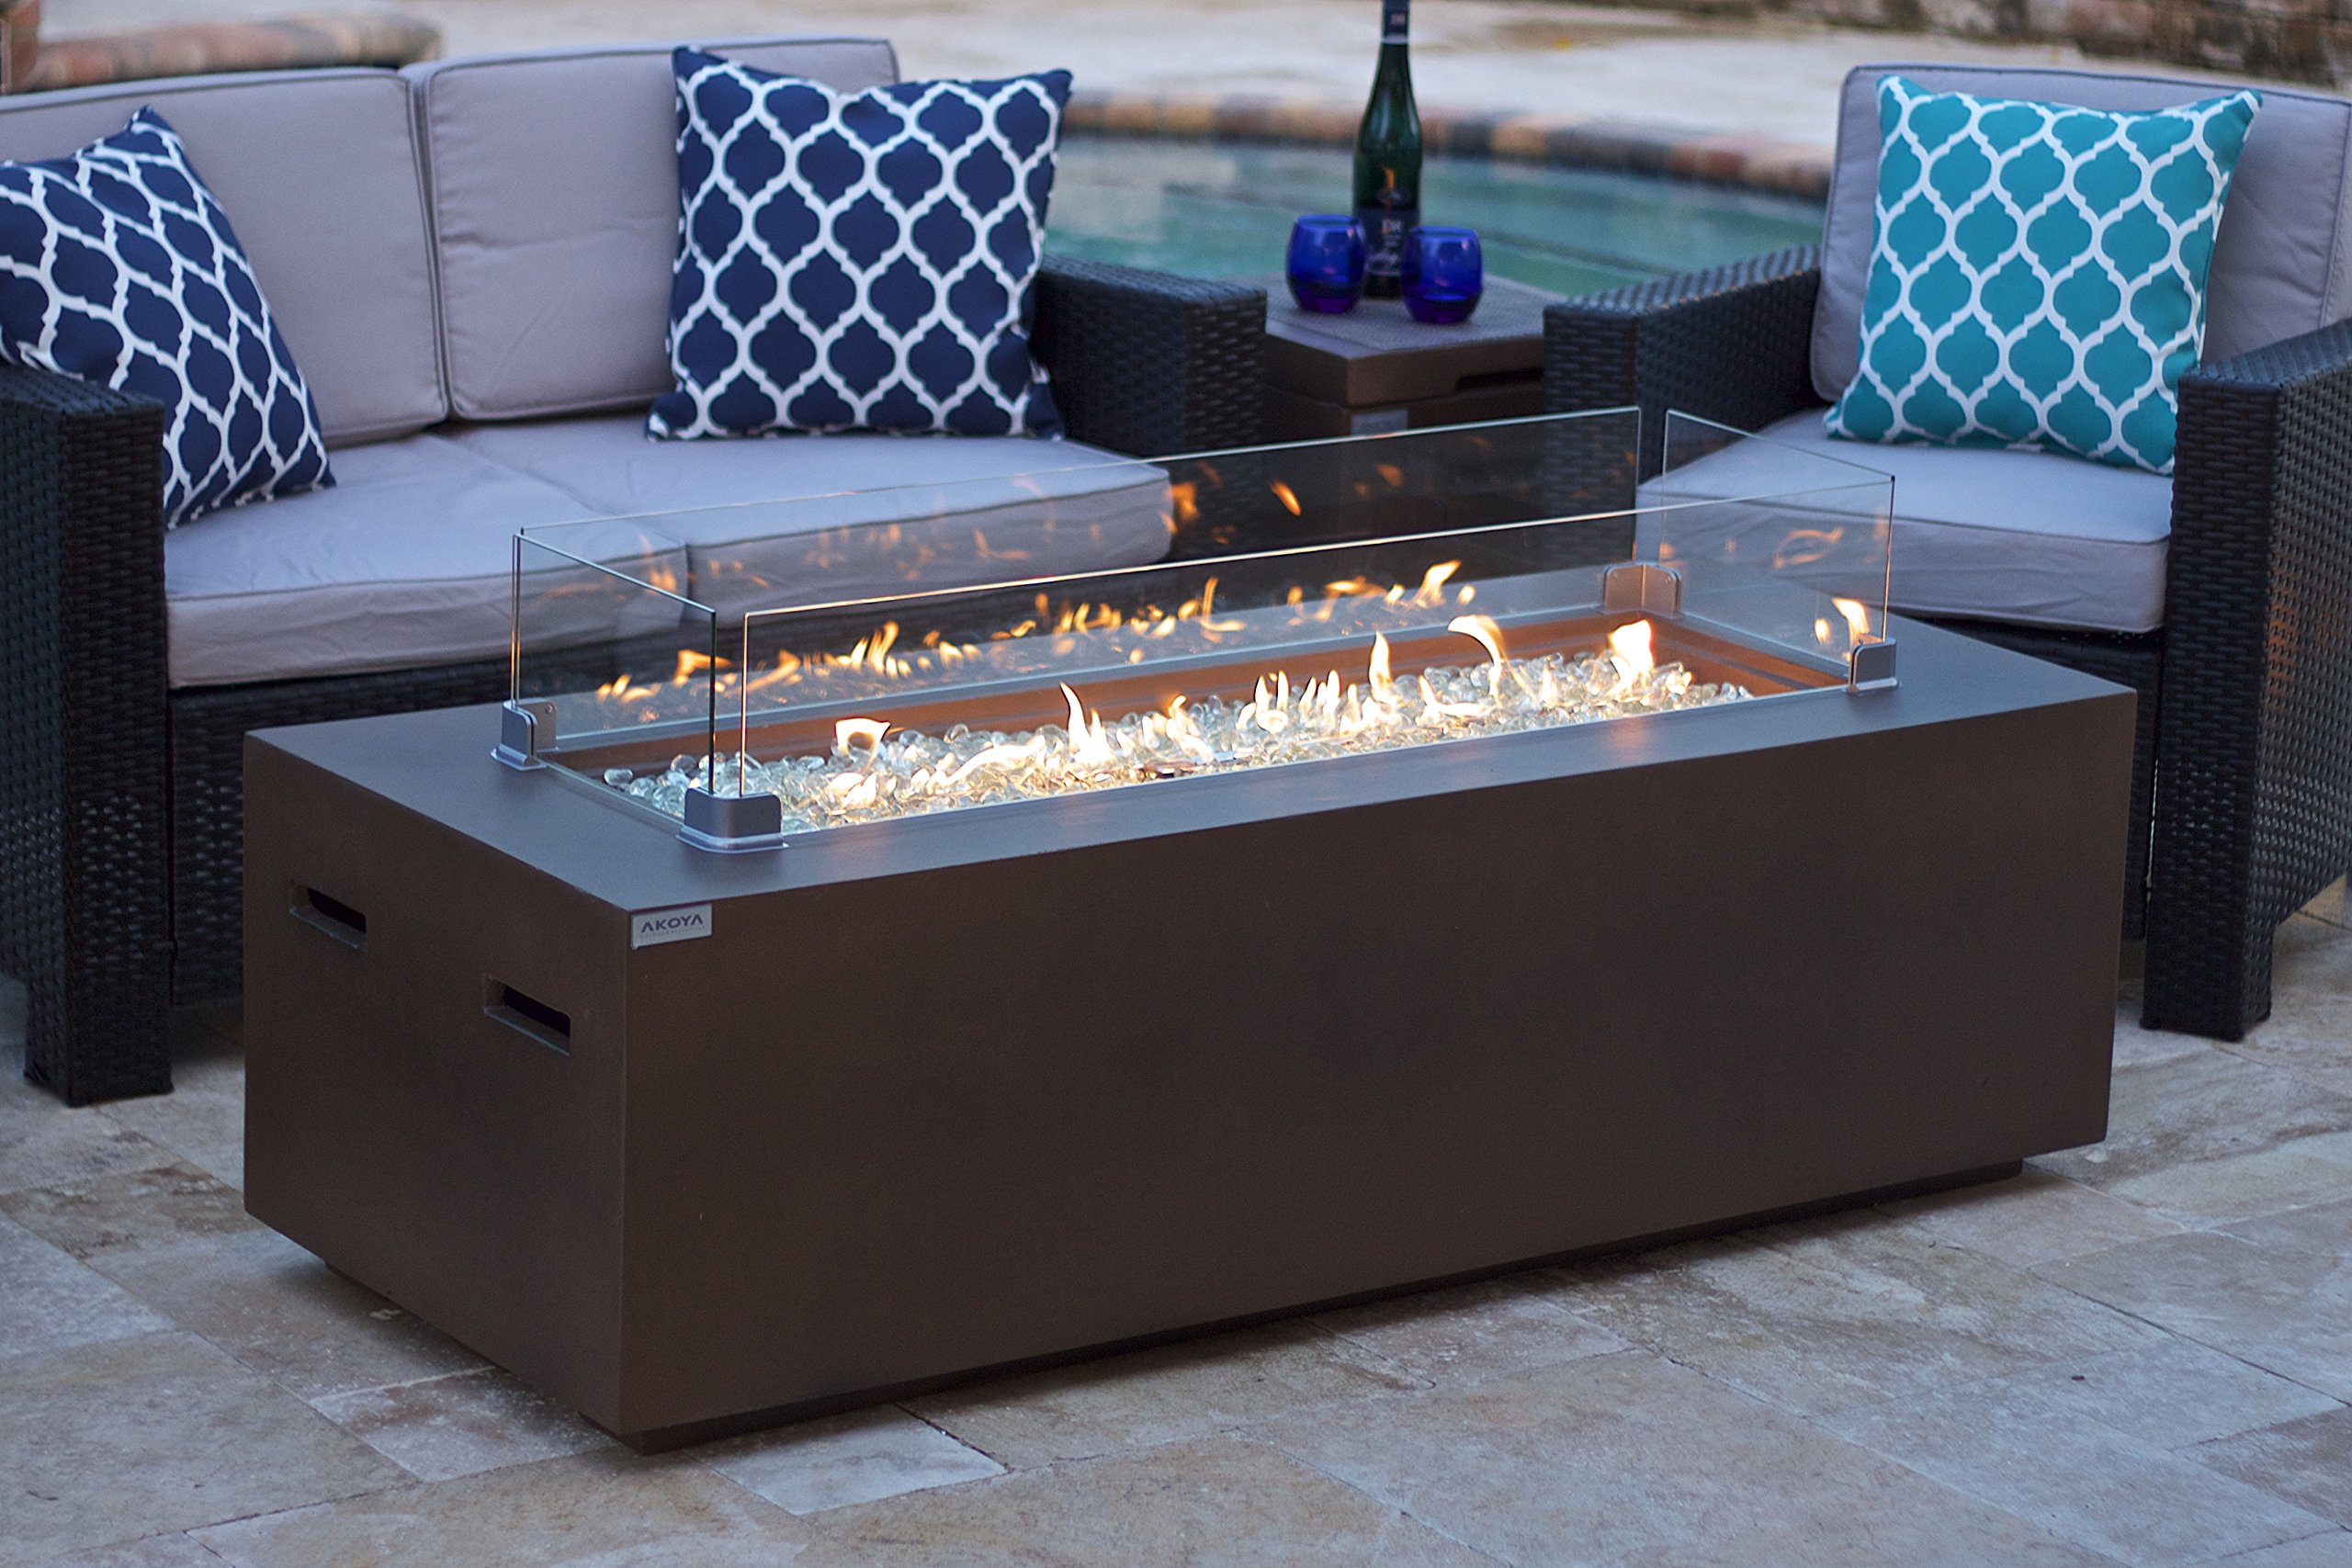 AKOYA Outdoor Essentials 60'' Rectangular Modern Concrete Fire Pit Table w/Glass Guard and Crystals in Brown (60'' Brown, Clear Crystals) by AKOYA Outdoor Essentials